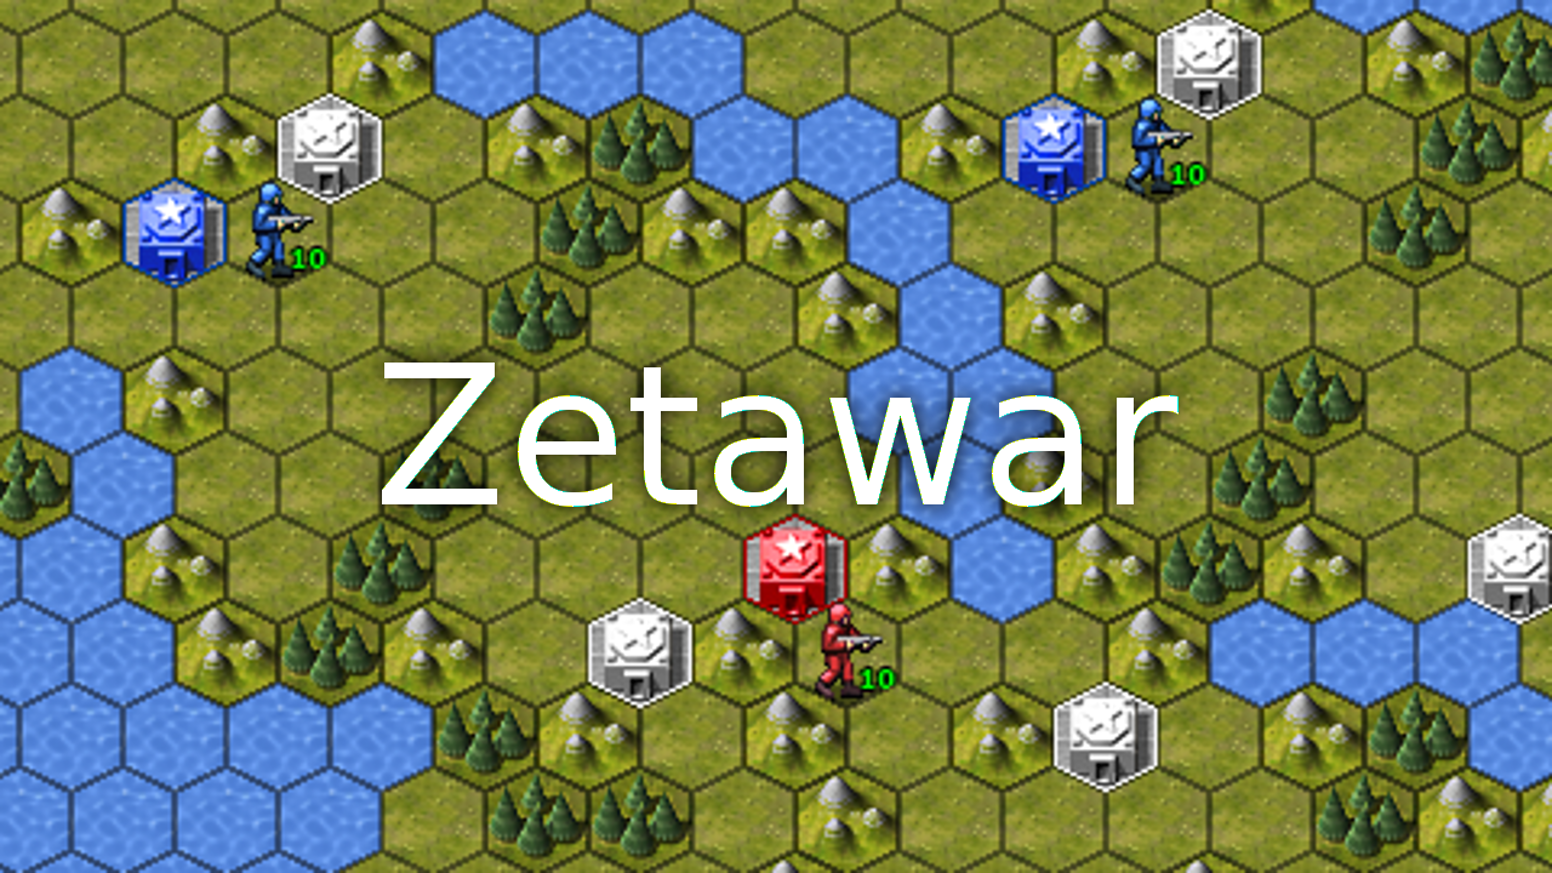 A highly customizable, open source, turn-based, tactical strategy web game written in ClojureScript.